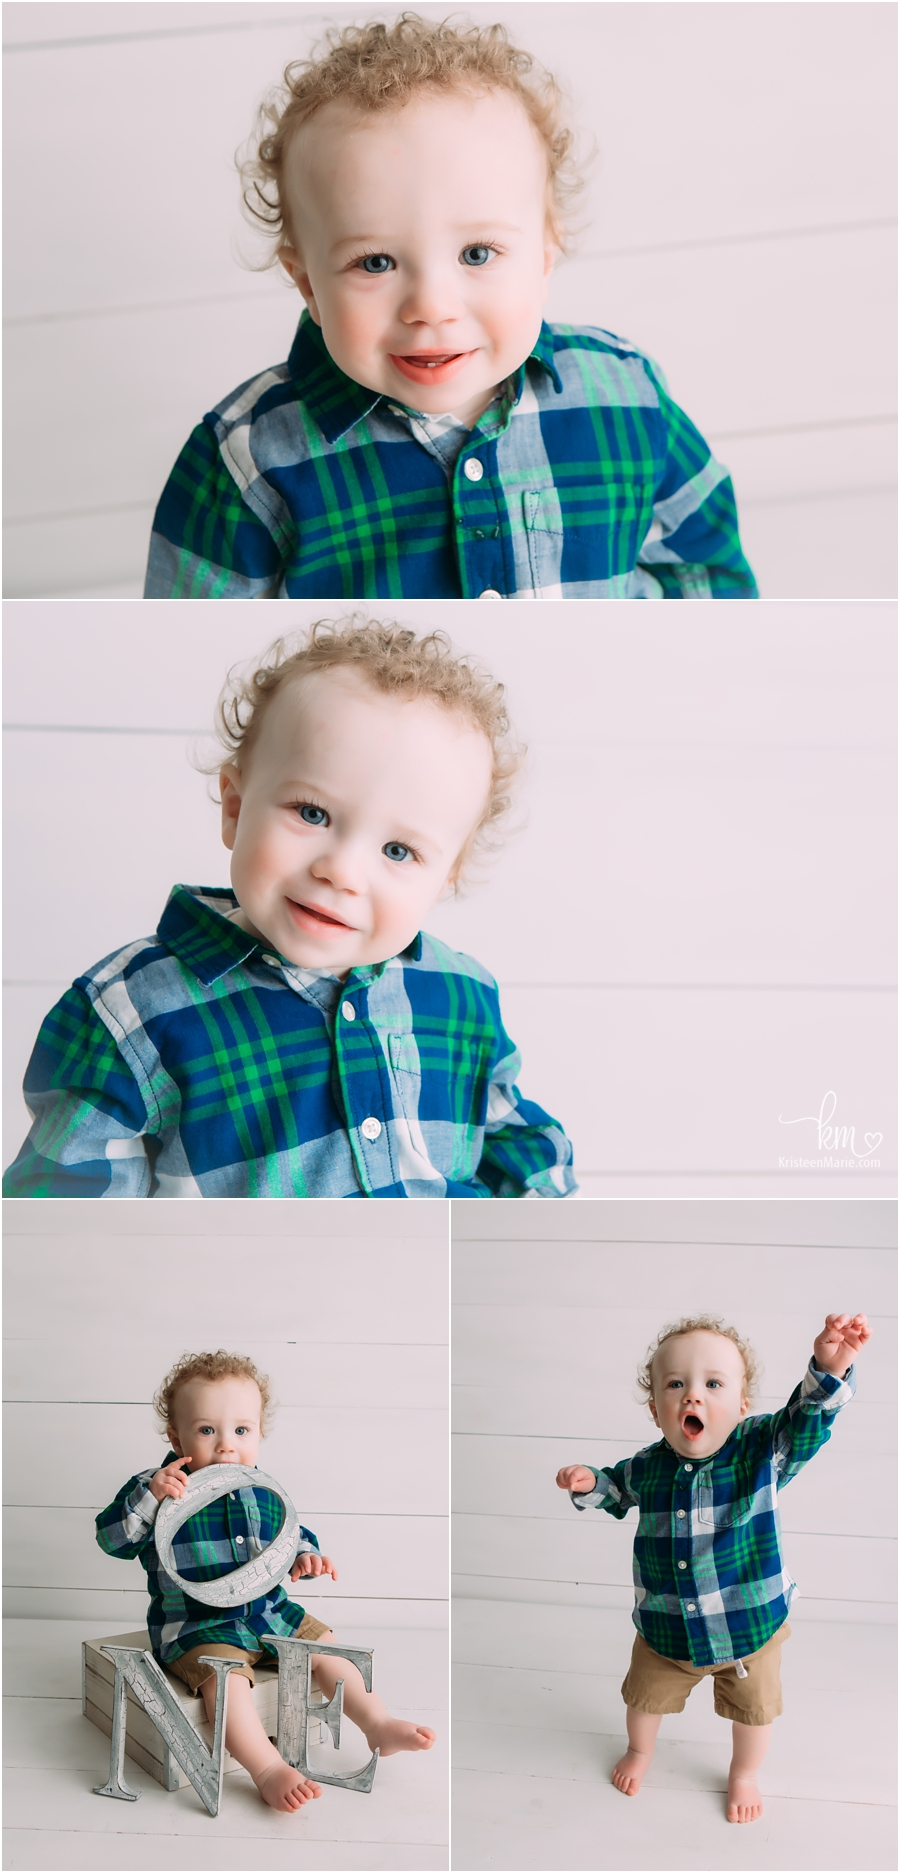 one year old boy with blue eyes and curly hair